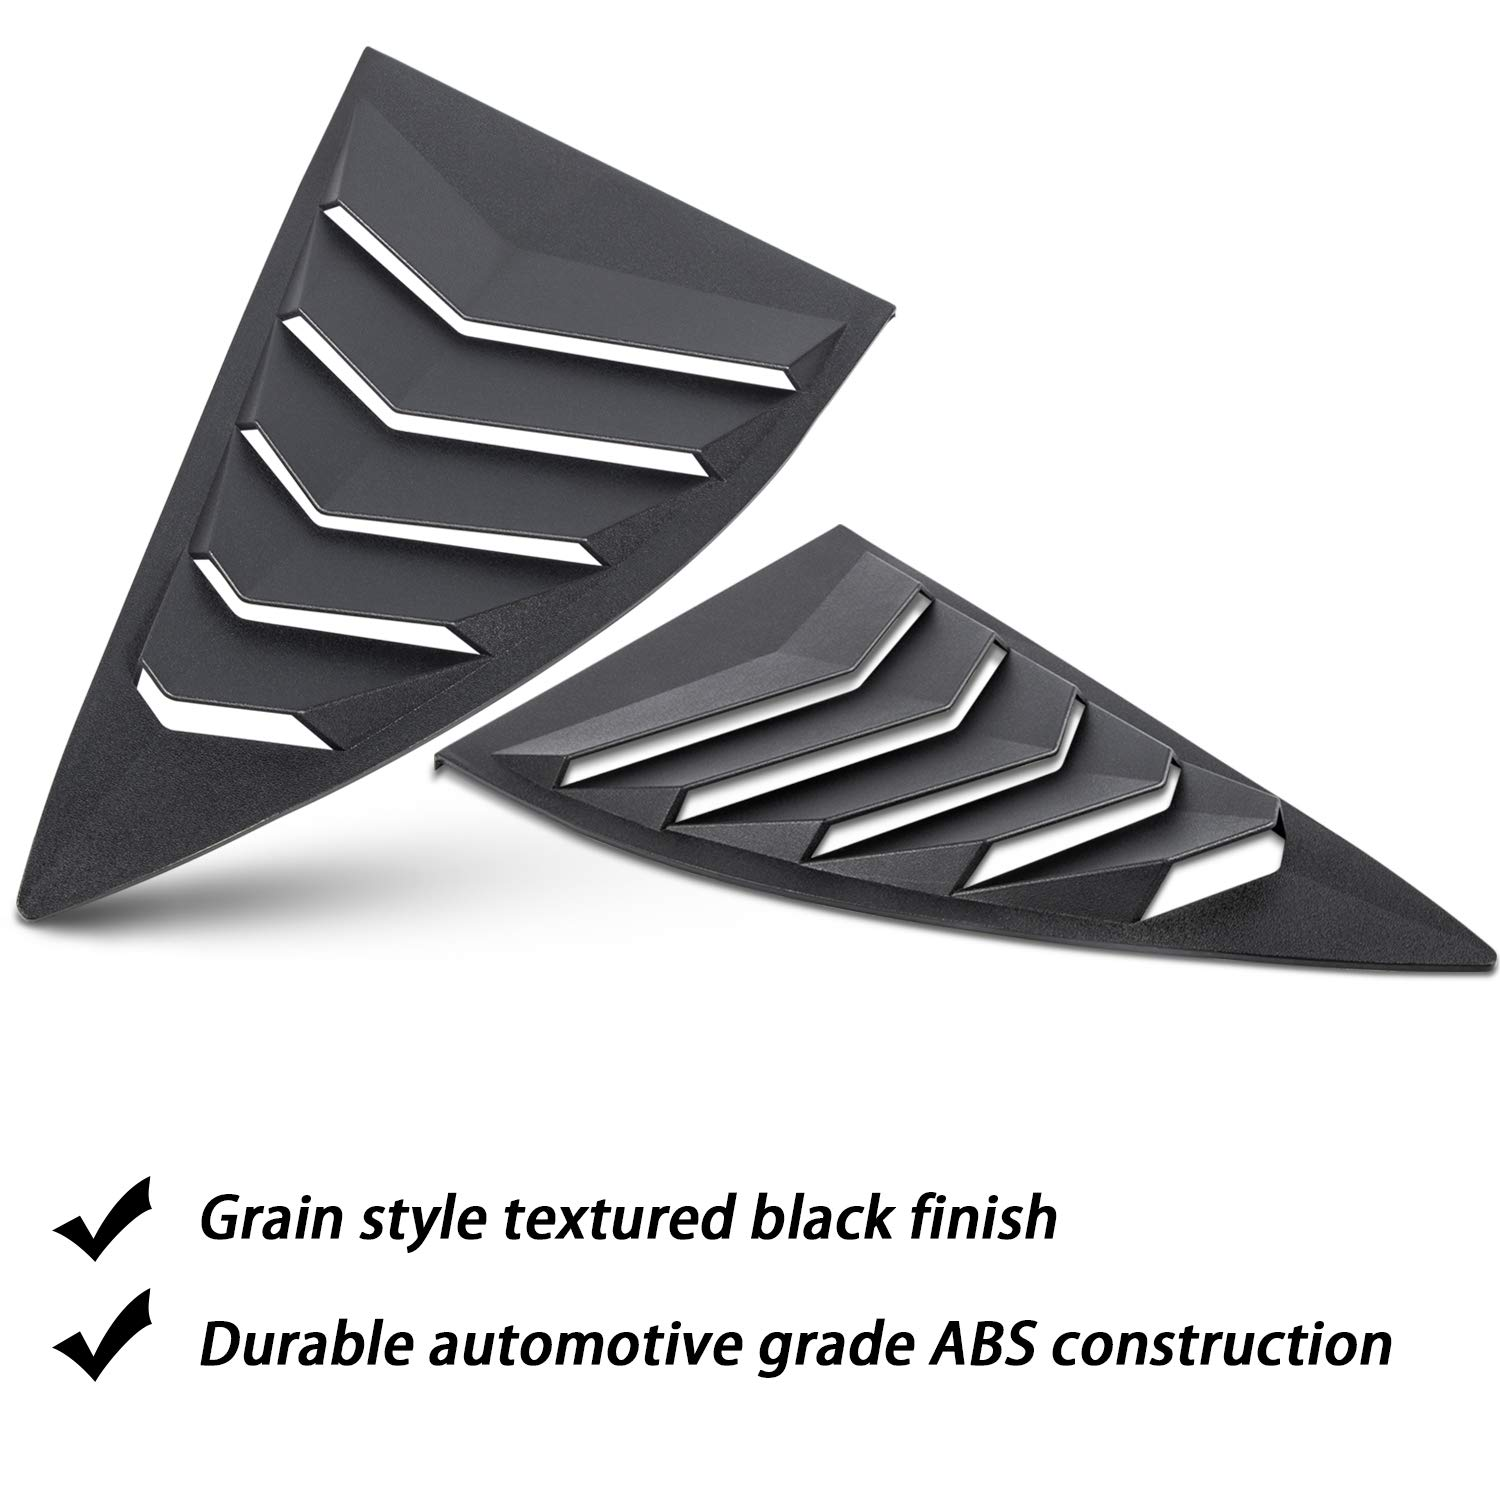 2PCS Quarter Side Window Louvers ABS Window Cover Vent Lambo Style for Camaro 2010-2015 LS LT RS SS GTS